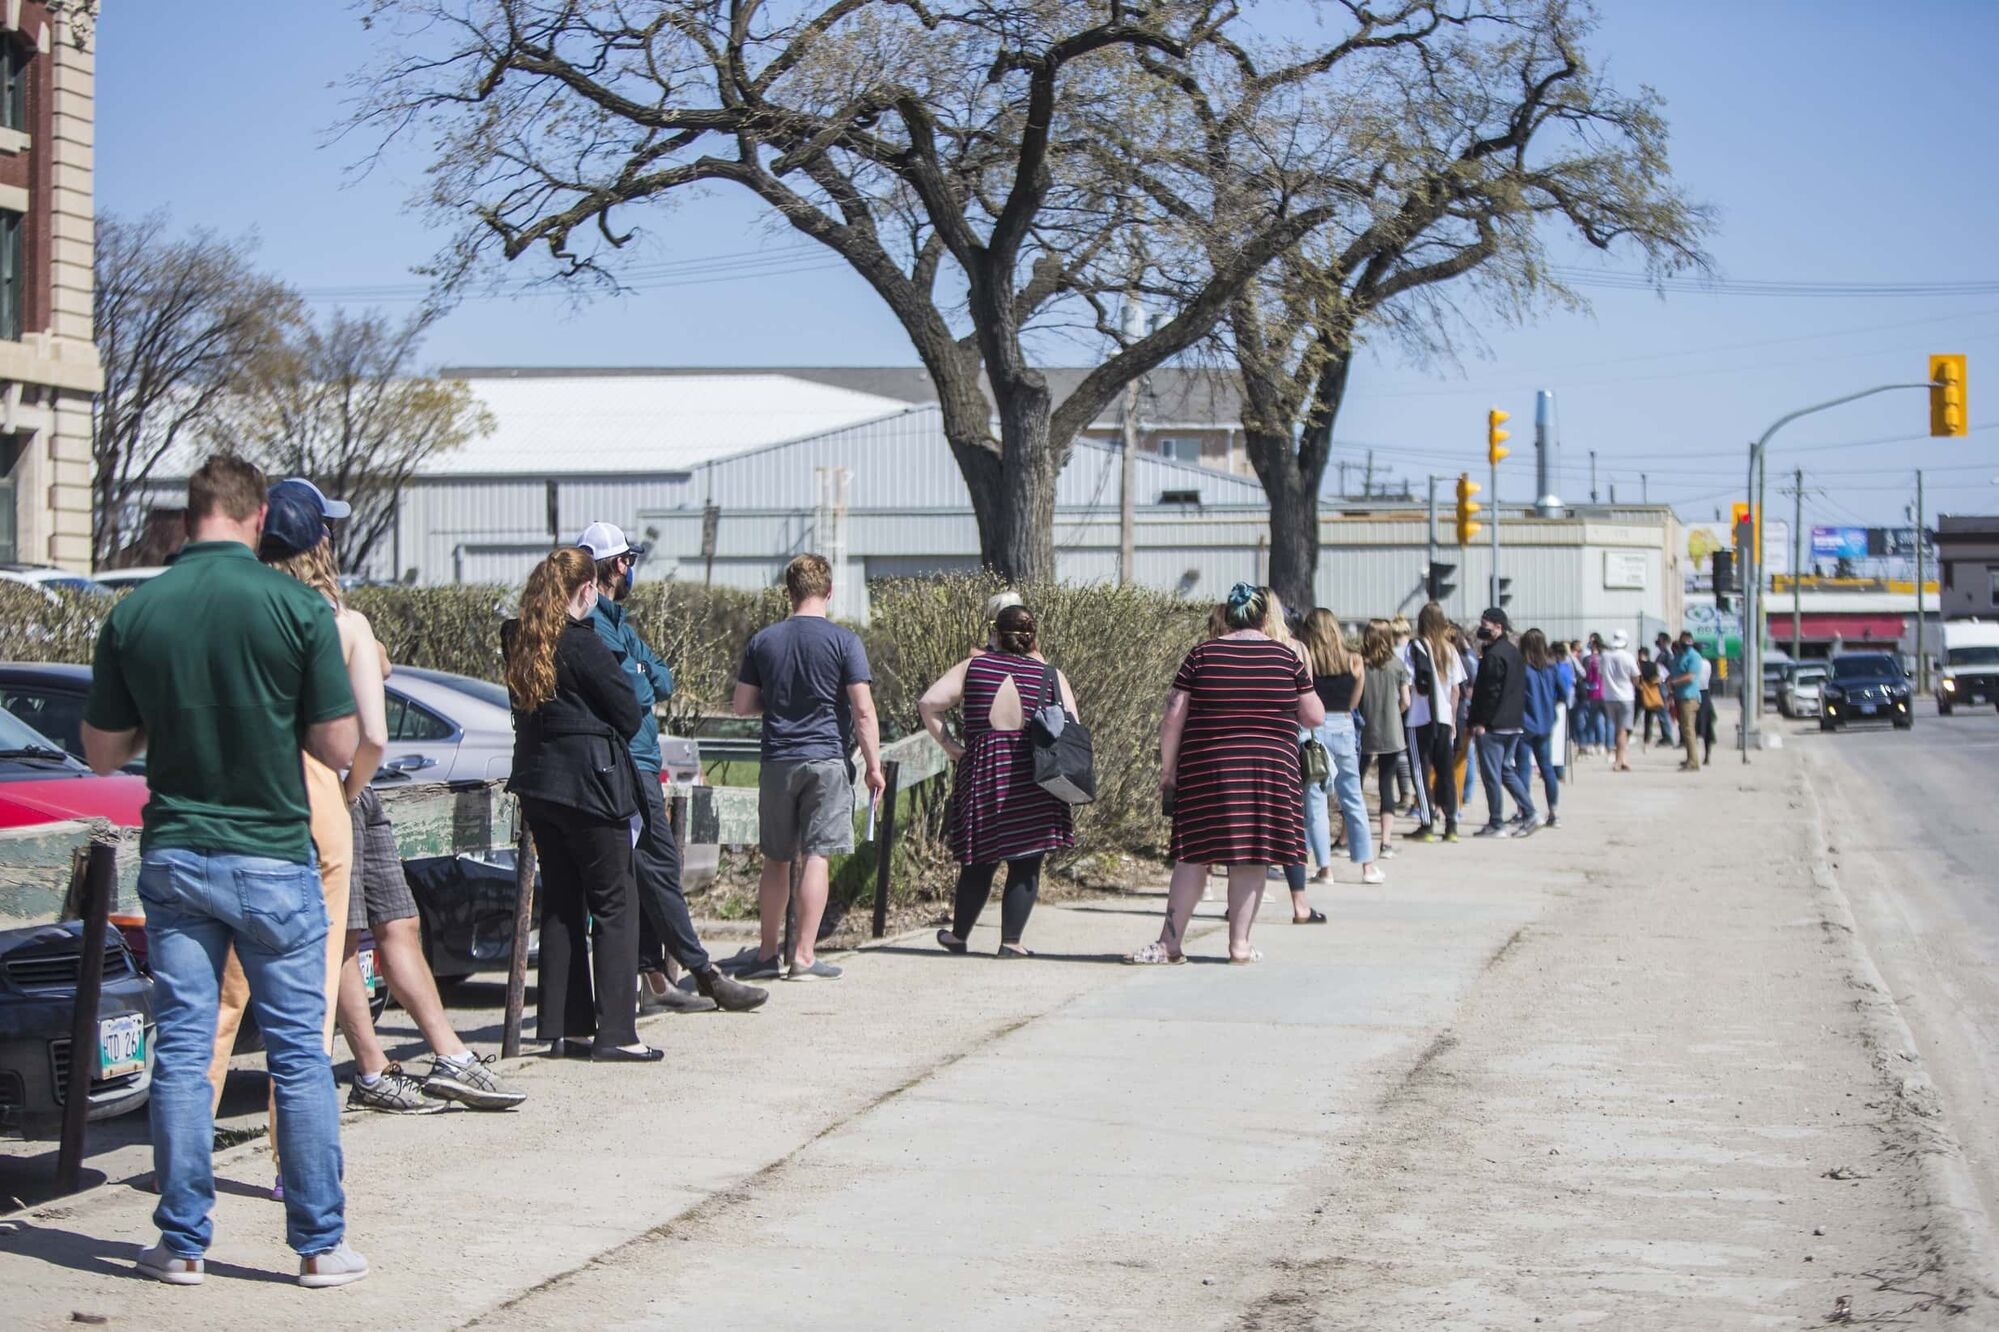 A mid-May line-up snakes down the sidewalk at a COVID-19 vaccine clinic. (Mikaela MacKenzie / Winnipeg Free Press files)